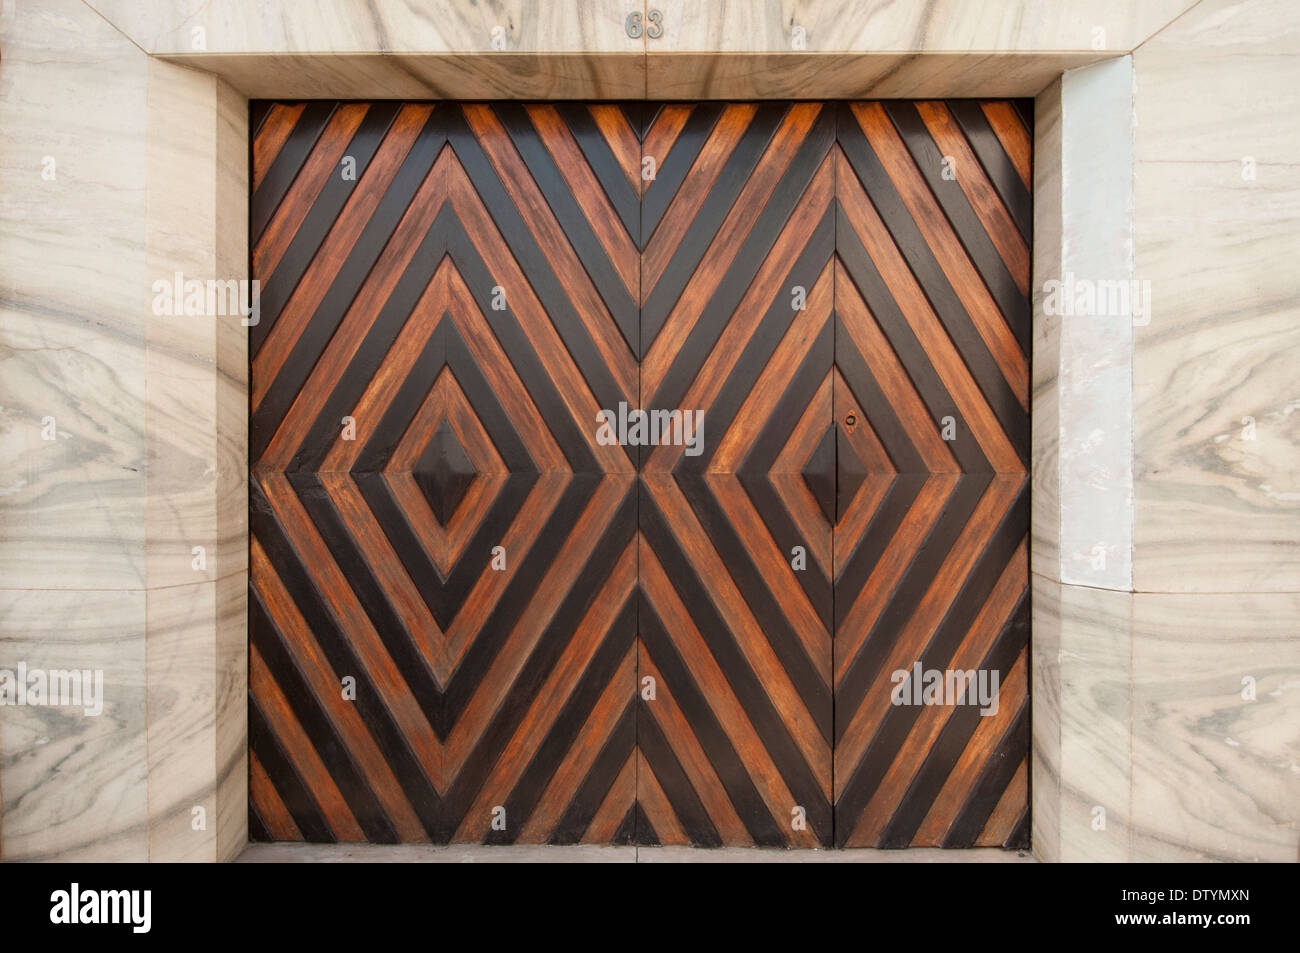 Modern art deco style garage doors set into marble wall portugal